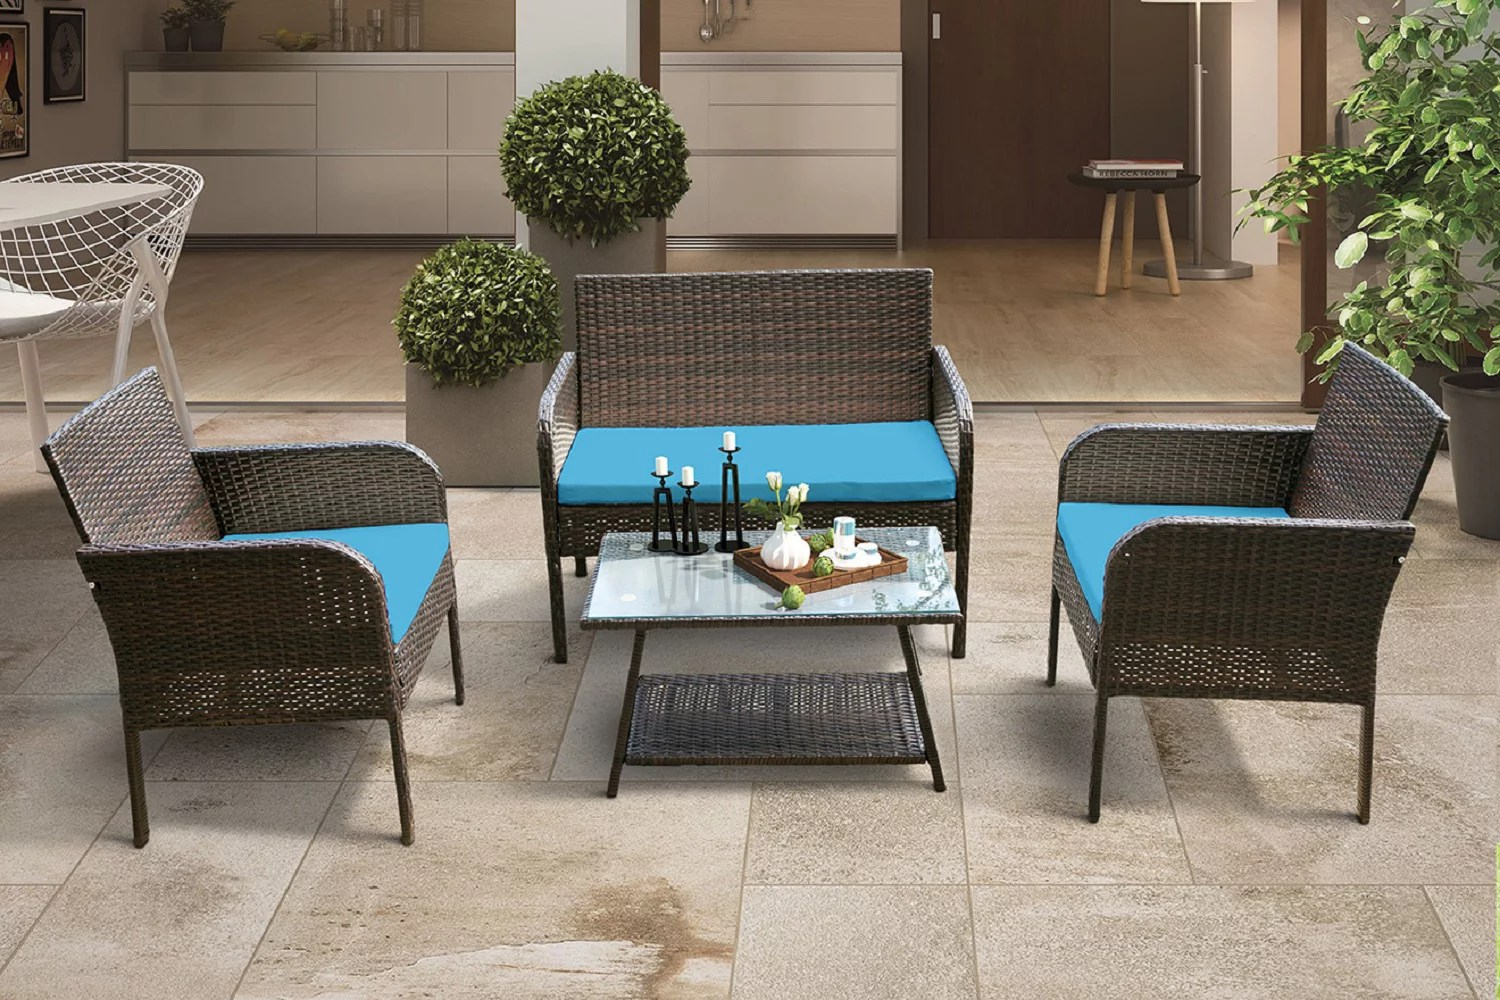 segmart 4 piece outdoor wicker furniture sets patio furniture rattan furniture conversation sets with seat cushions tempered glass coffee dining